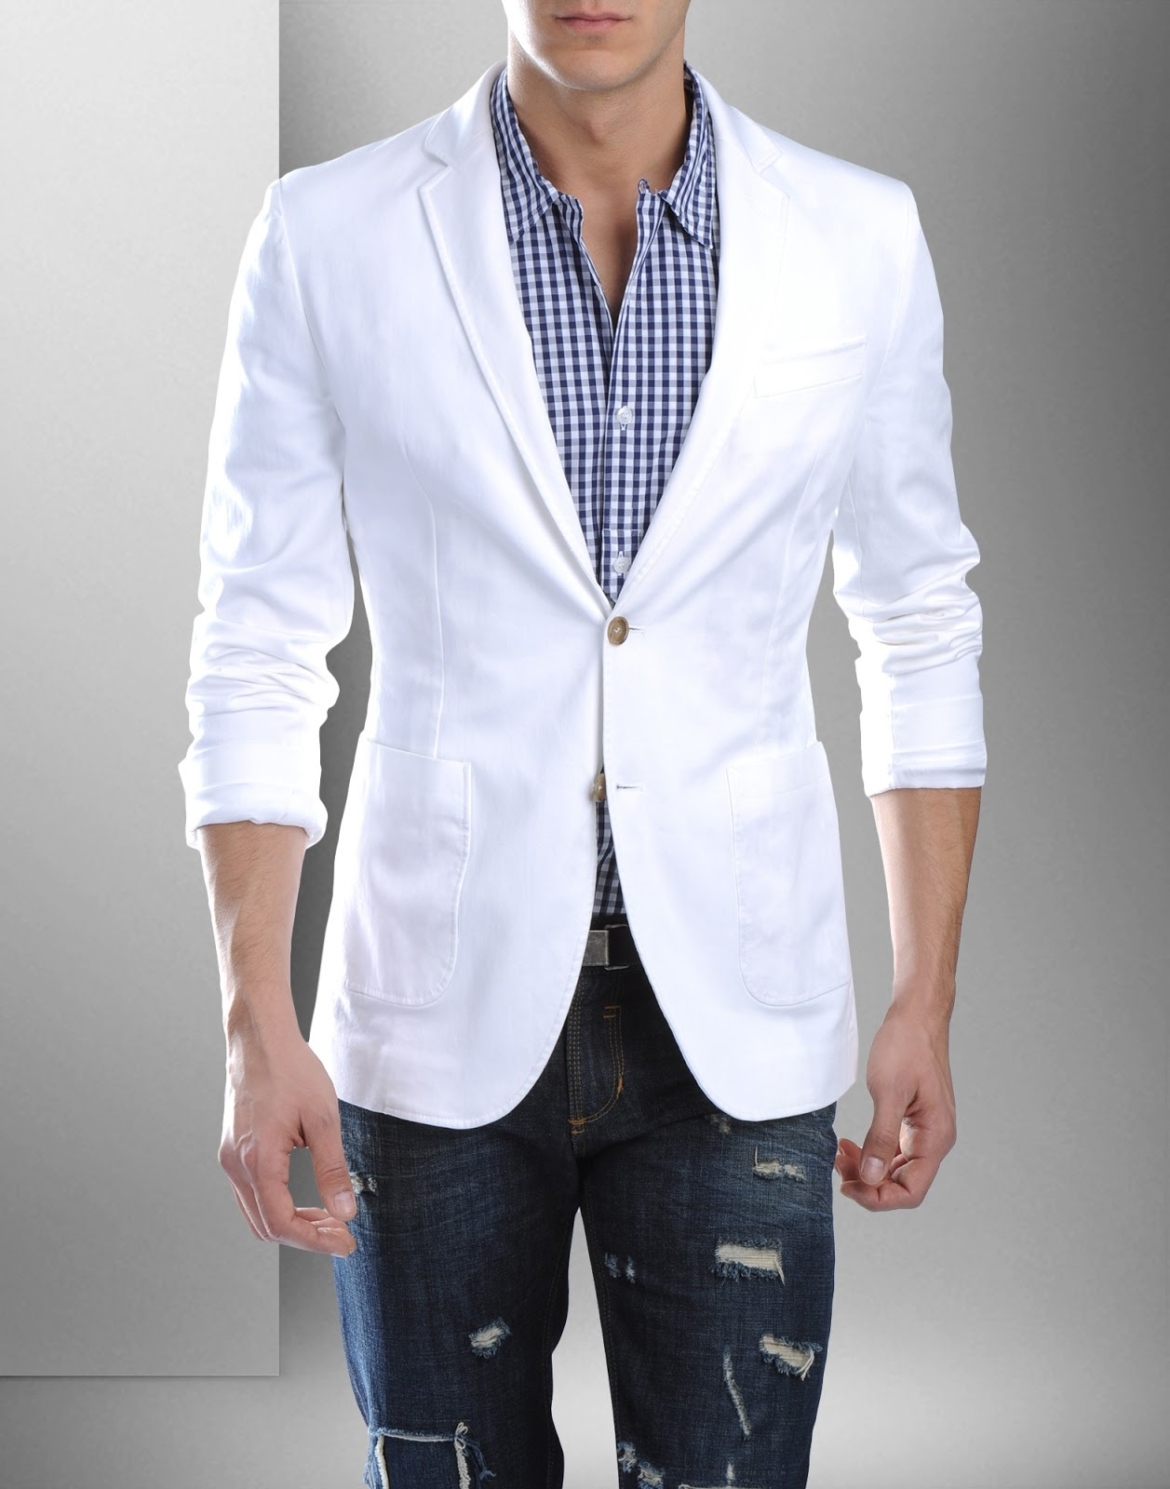 Mens Fashion Jeans And Suit Jacket